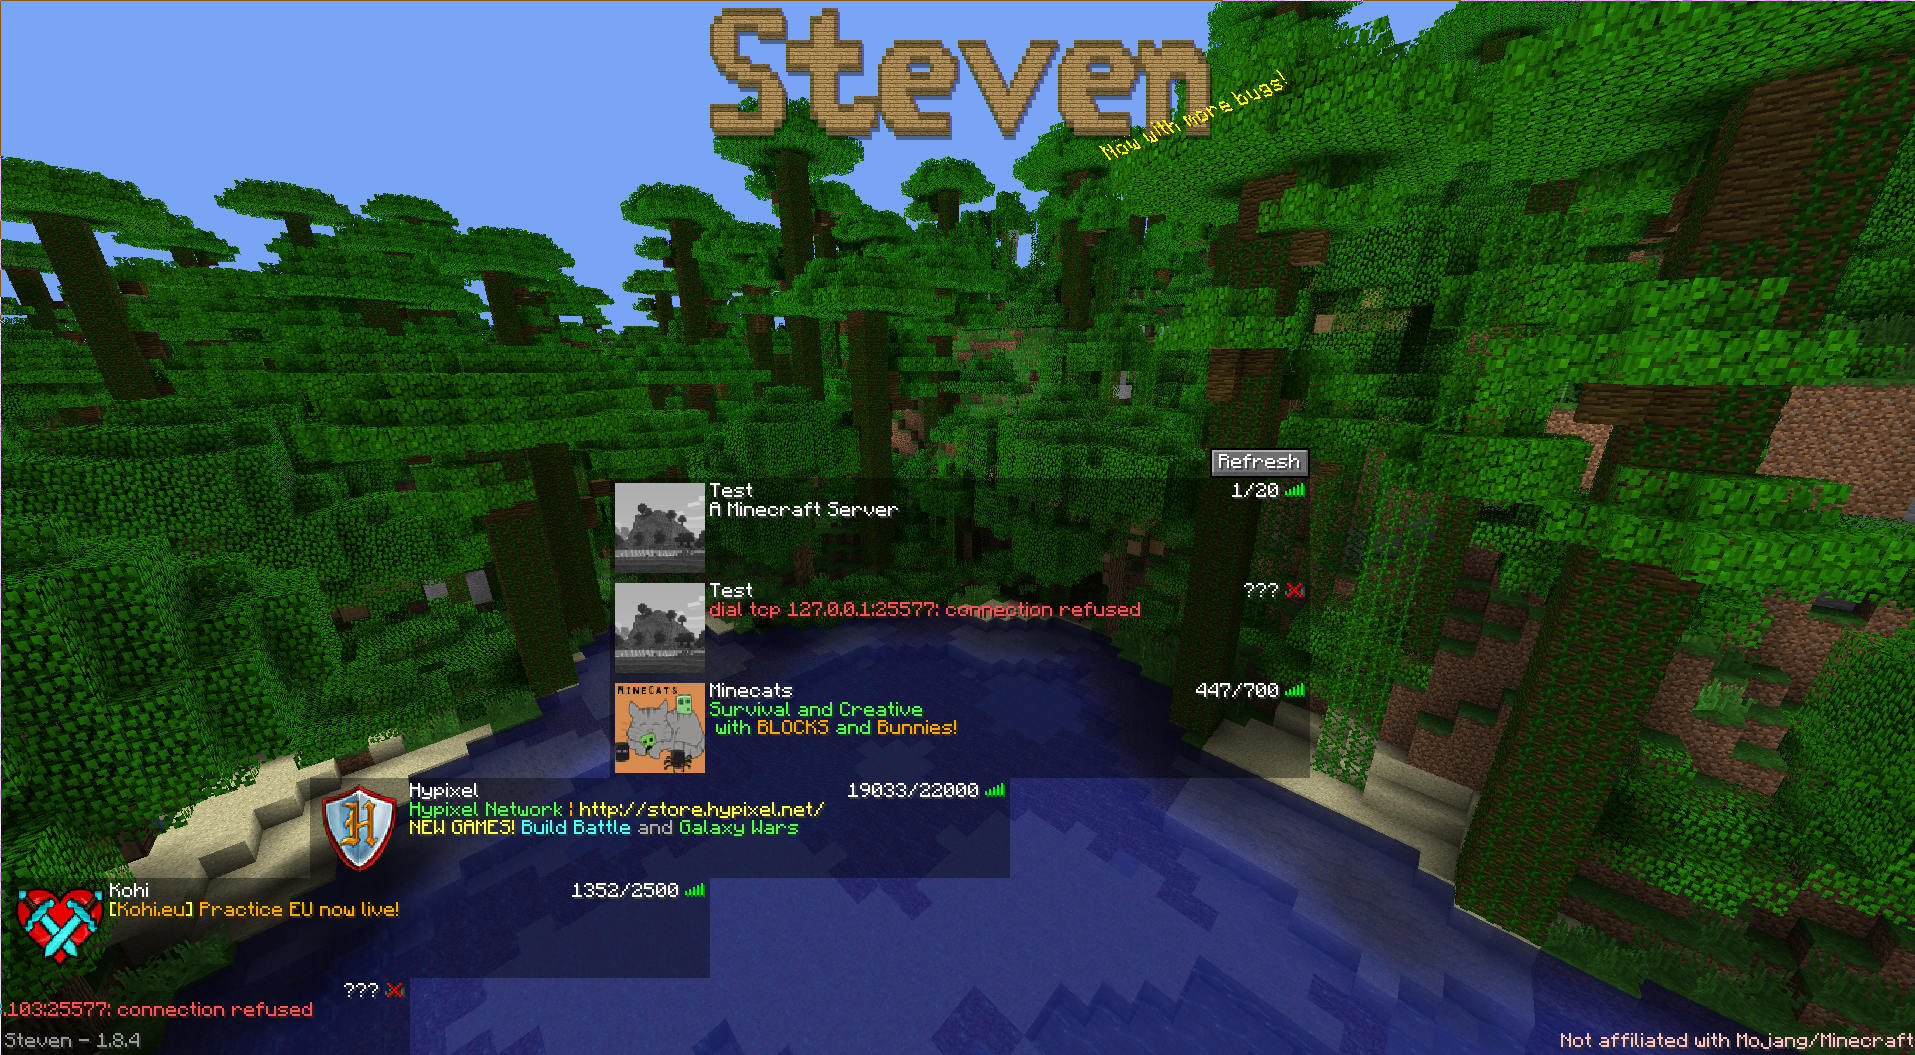 Steven's server list after disconnecting from a server